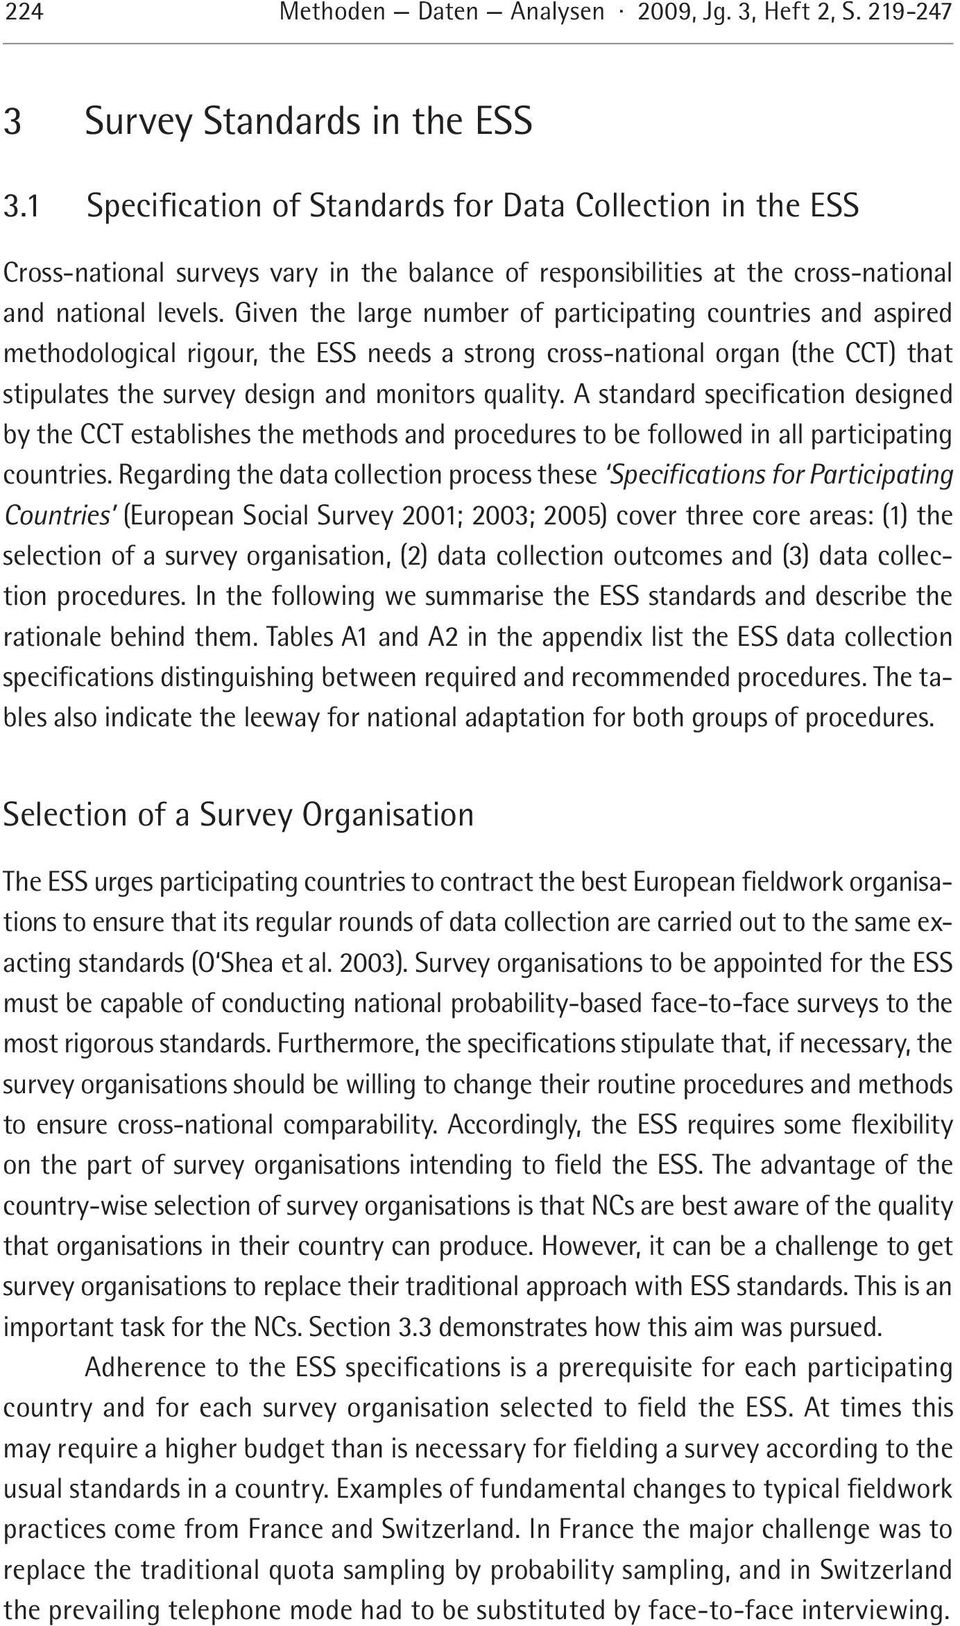 Given the large number of participating countries and aspired methodological rigour, the ESS needs a strong cross-national organ (the CCT) that stipulates the survey design and monitors quality.